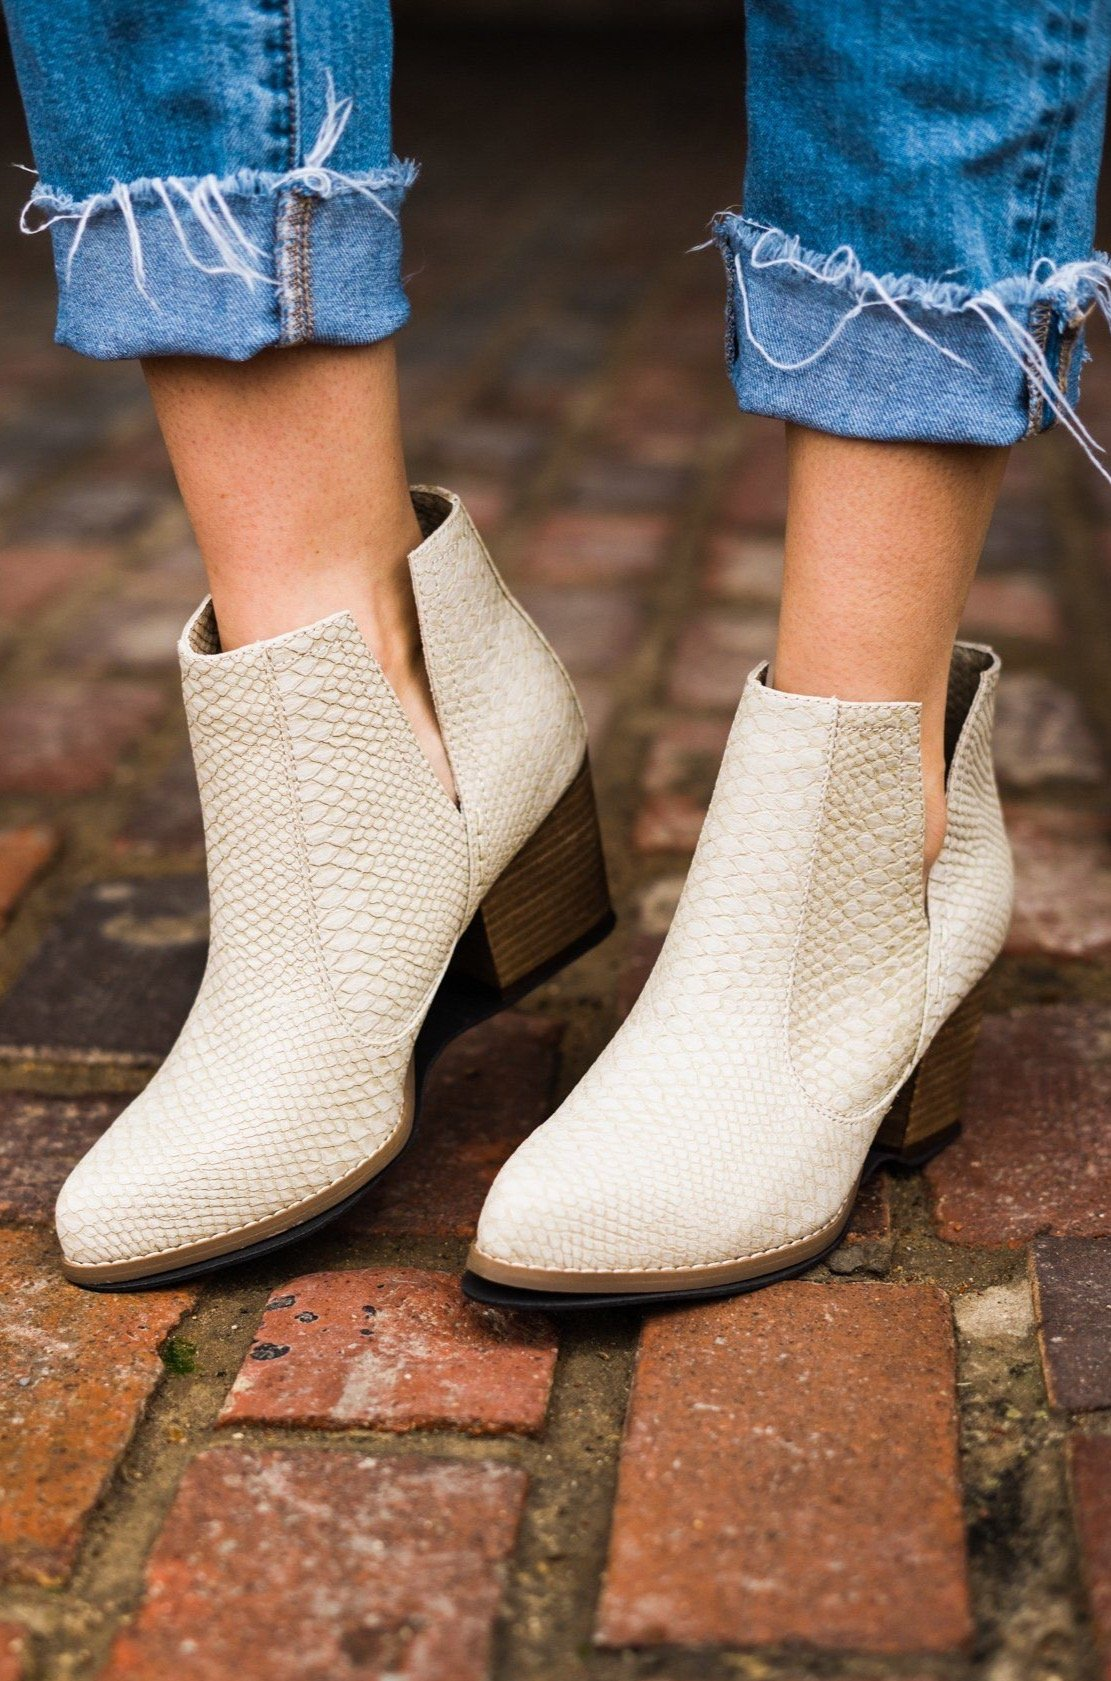 Not Rated Tarim Bootie in Cream-Boots-Not Rated-[option4]-[option5]-[option6]-[option7]-[option8]-Shop-Boutique-Clothing-for-Women-Online